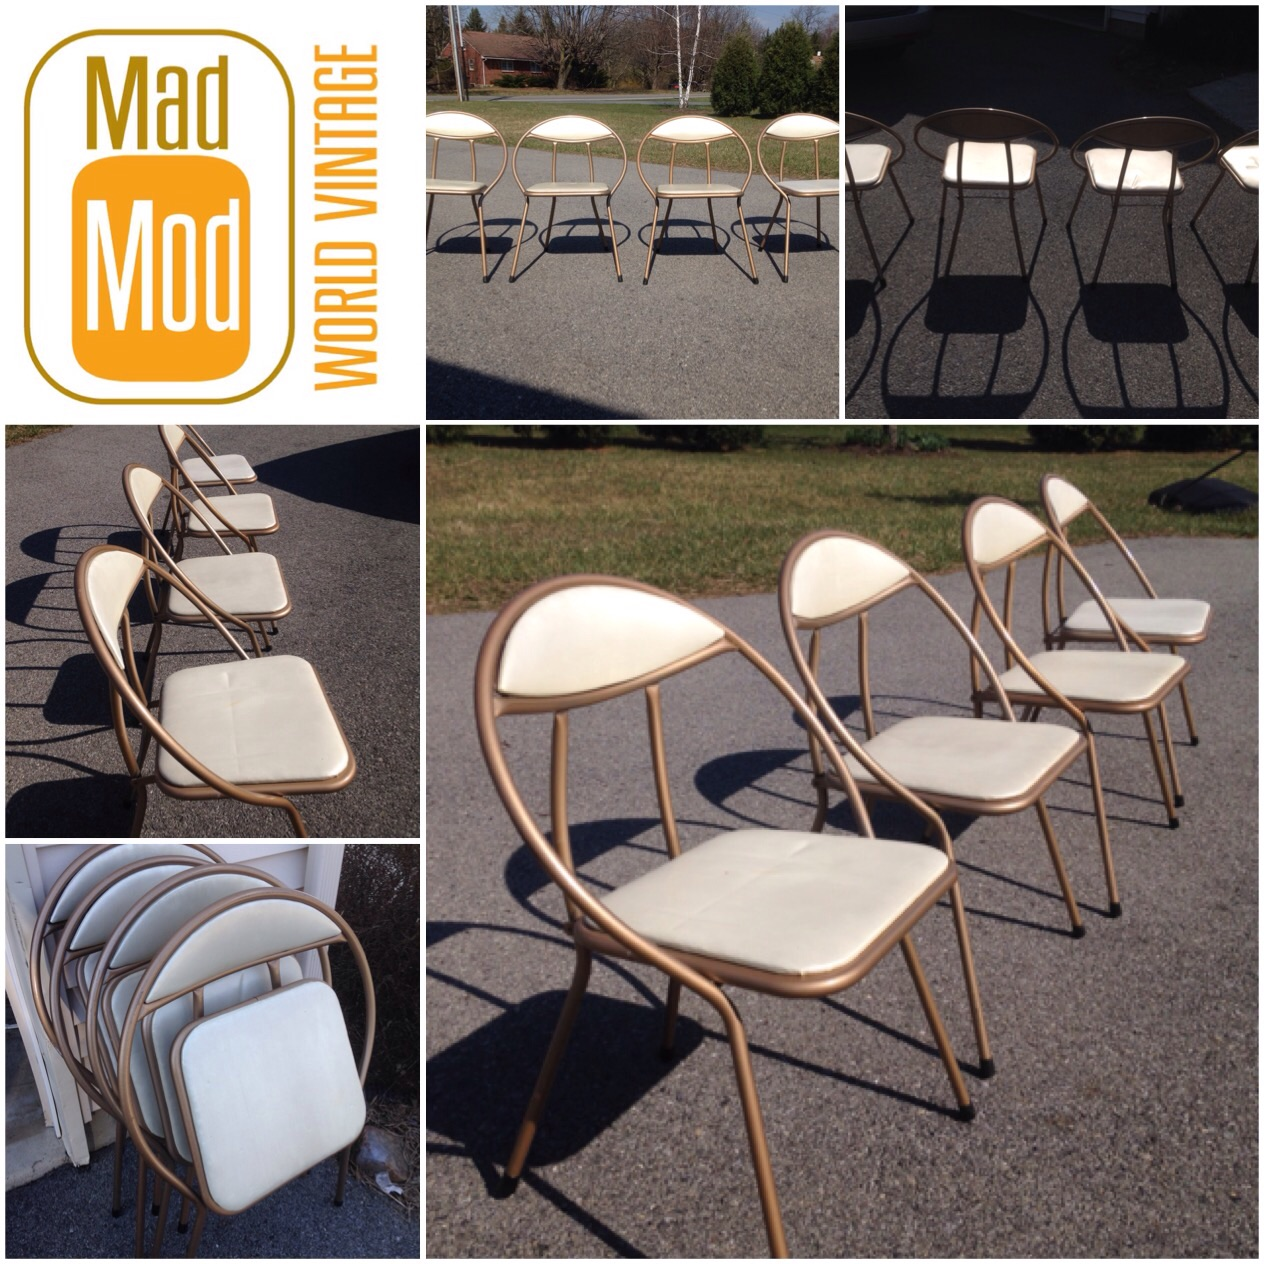 CLARK folding Hoop chair set of 4. Gold with opal vinyl. Clean with minimal wear. So unique!